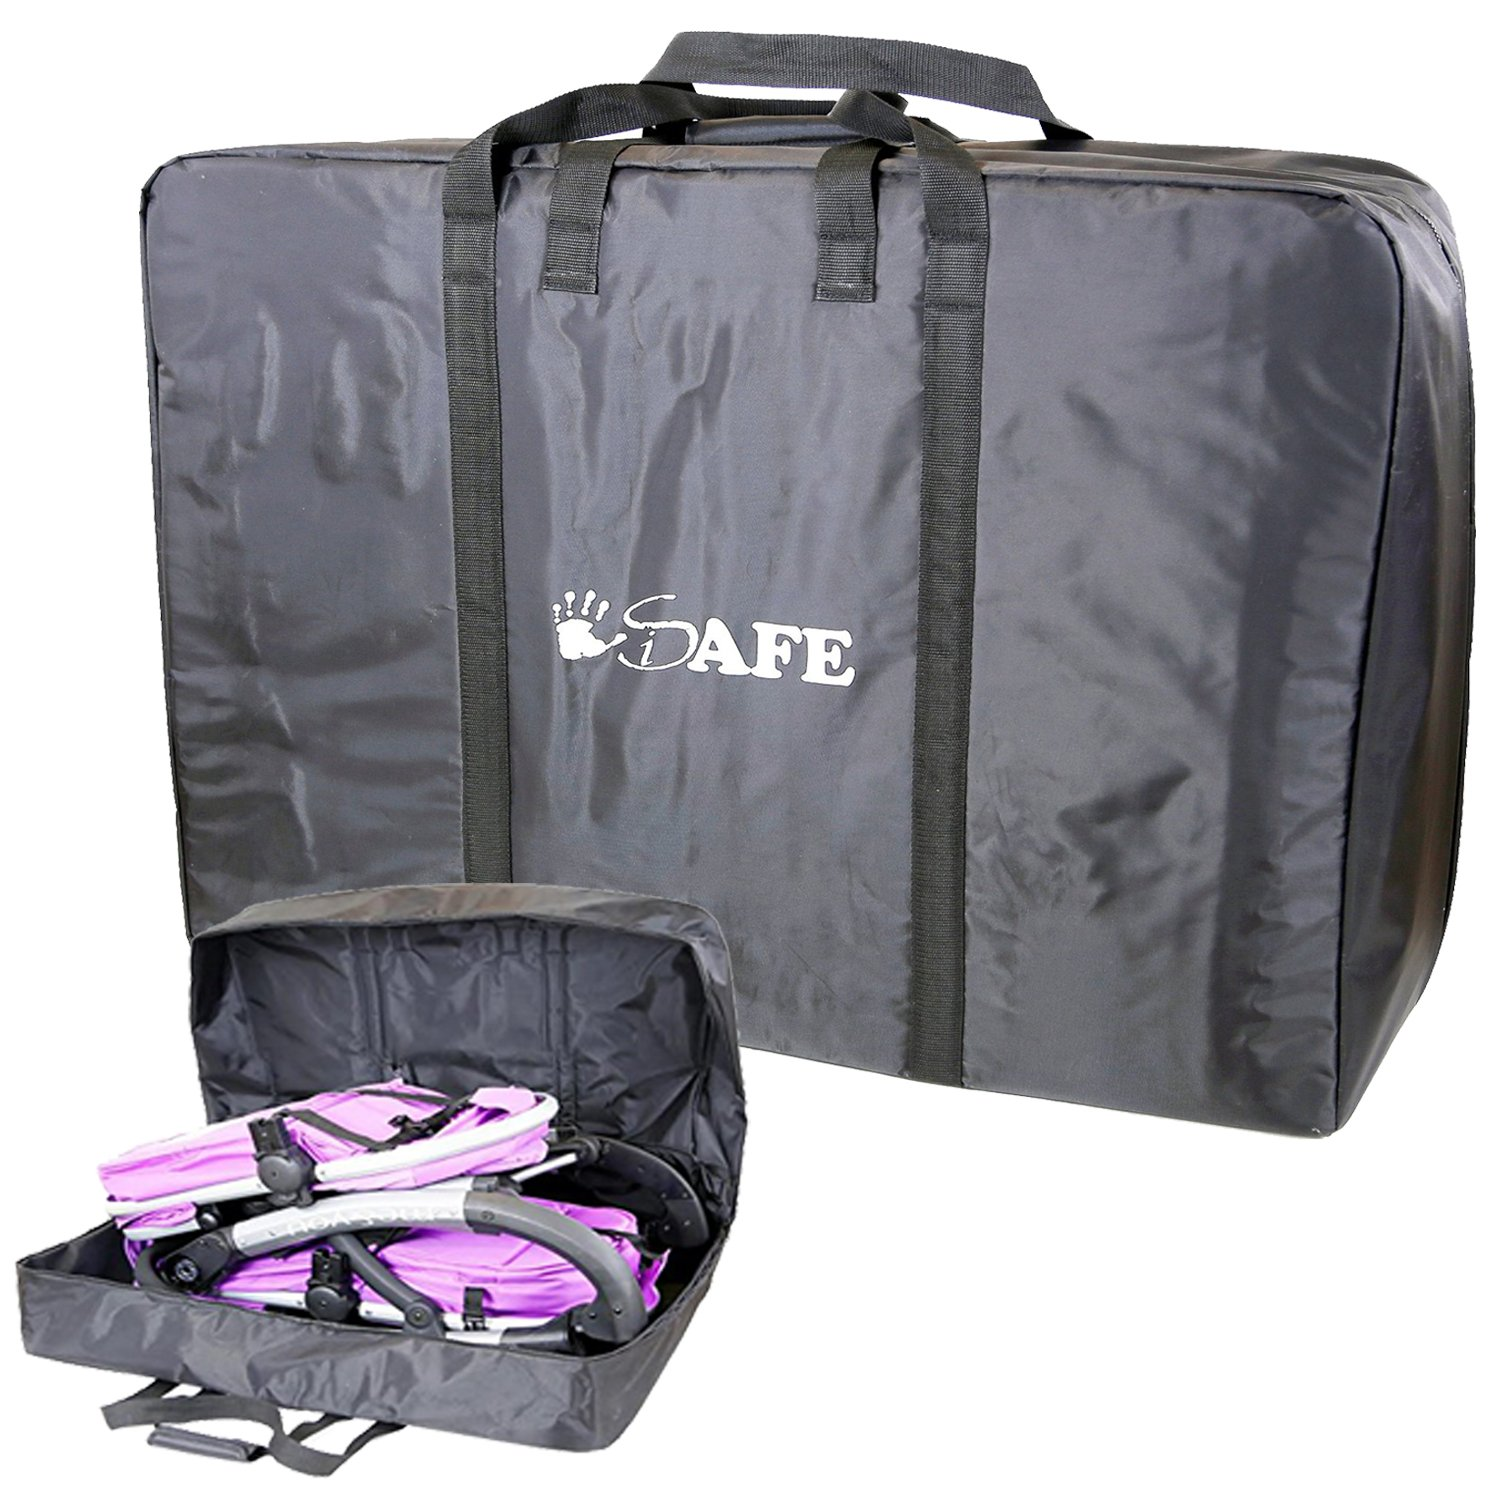 TWIN/INLINE/DOUBLE Travel Bag Luggage Heavy Duty Design For Inline Tandem Travel Tote iSafe iSafeTrvlBagPram-1